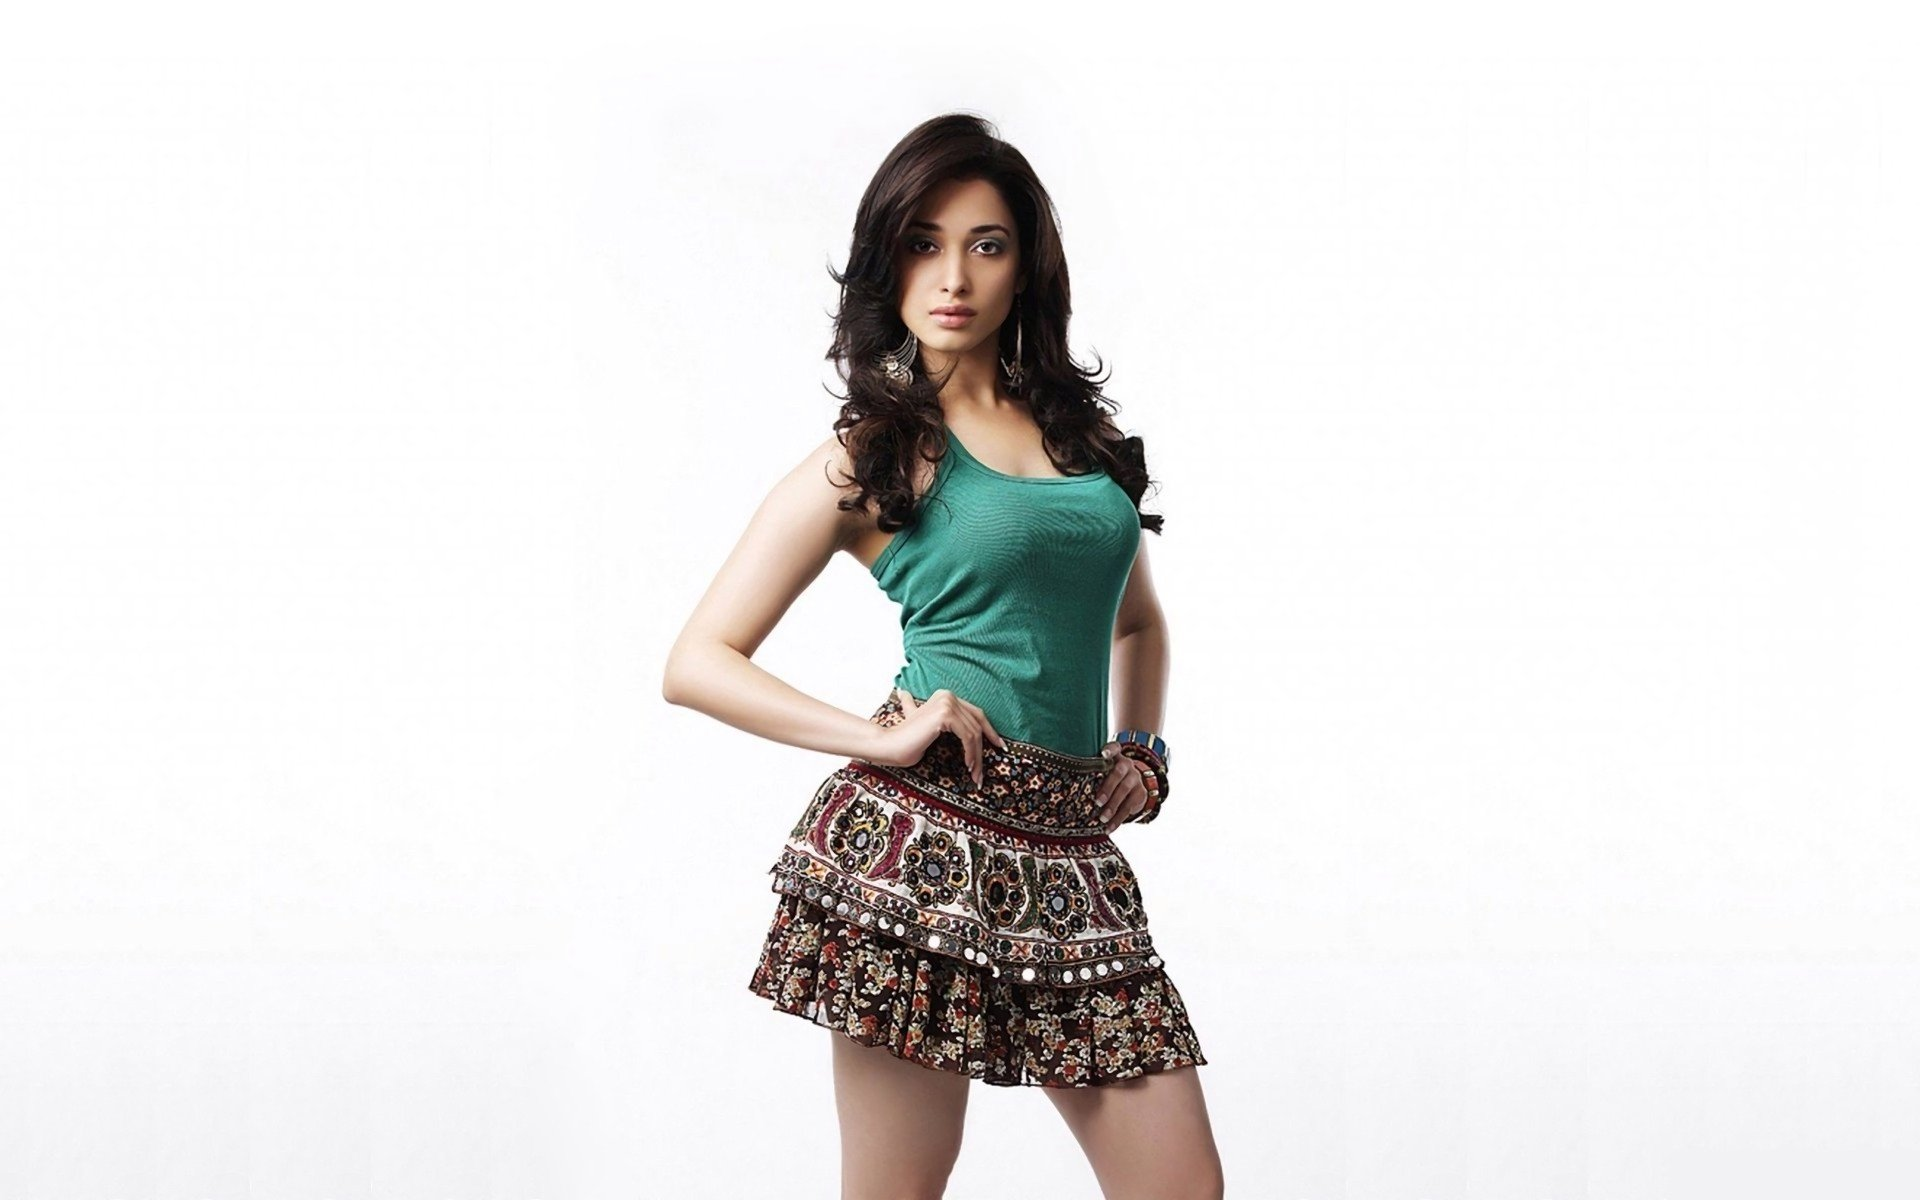 Tamanna Hot Casual Dressed Photograph